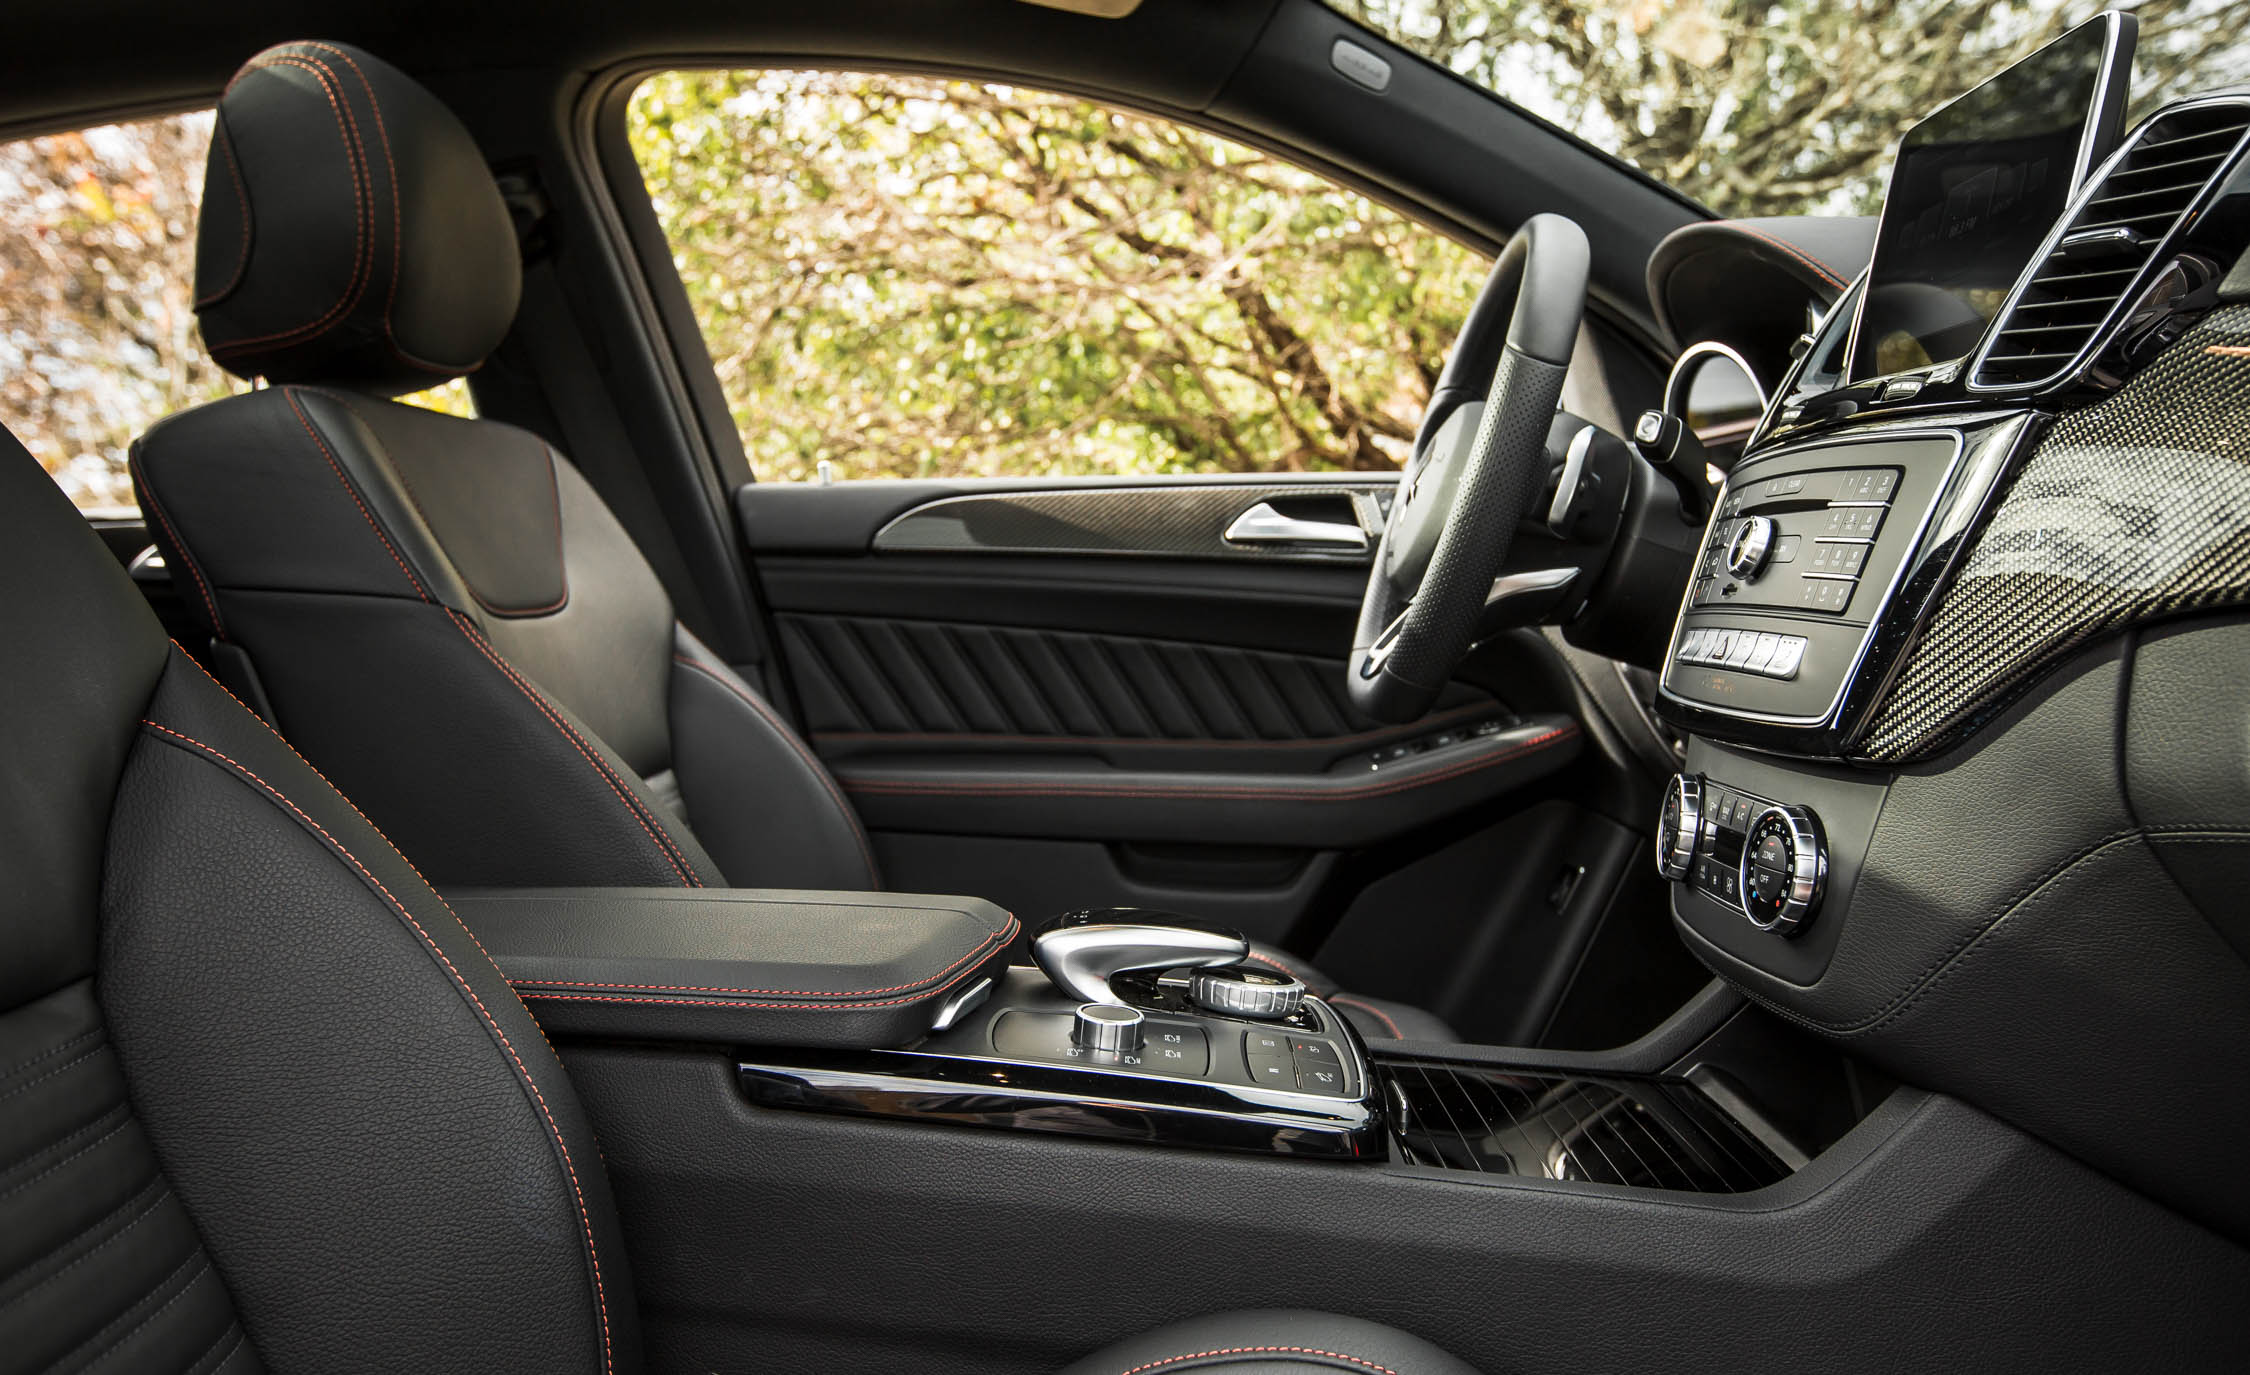 2016 Mercedes-Benz GLE450 AMG Coupe Interior Cockpit Seat